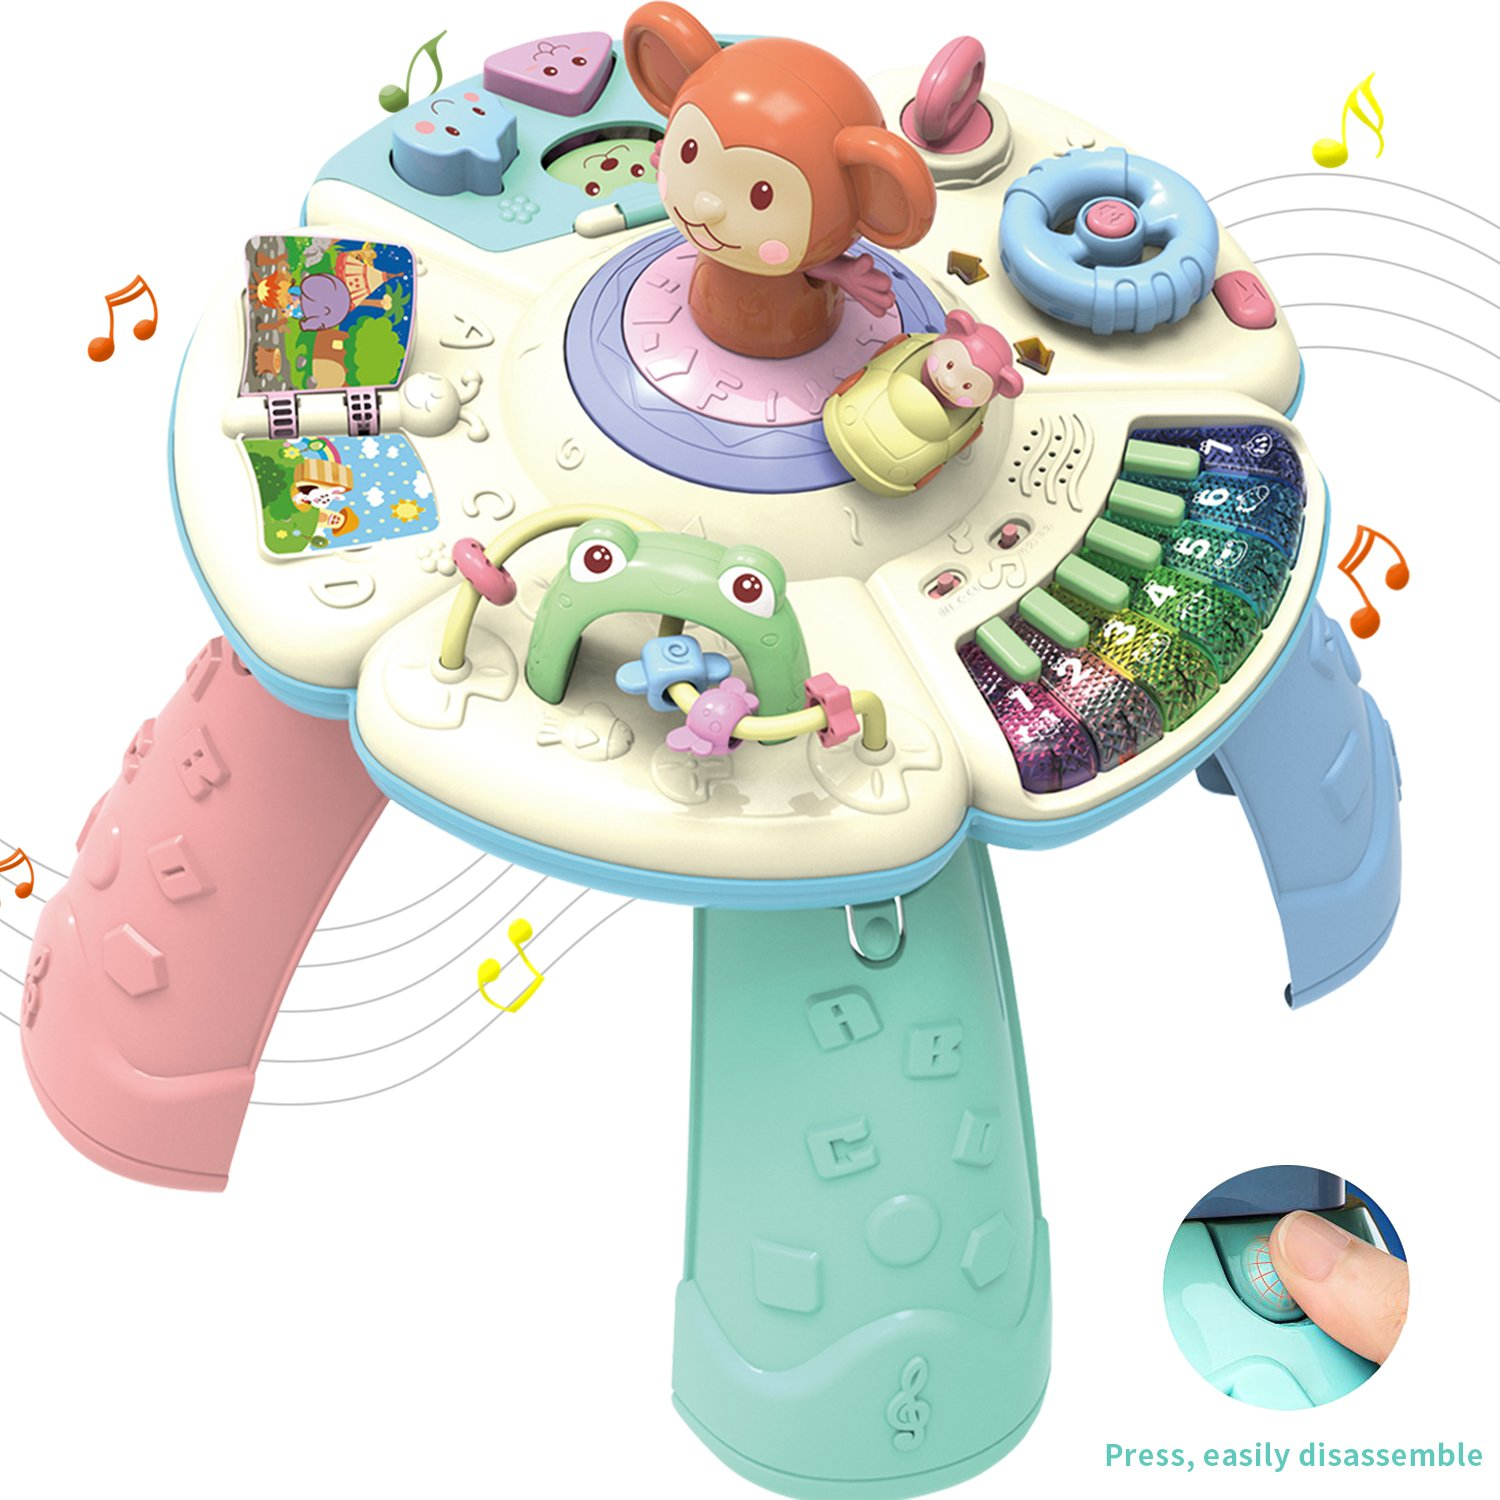 HOMOF Baby Toys Musical Learning Table 6 Months up-Early Education Music Activity Center Game Table Toddlers,Infant,Kids Toys for 1 2 3 Years Old Boys & Girls- Lighting & Sound (New Gifts) (1)